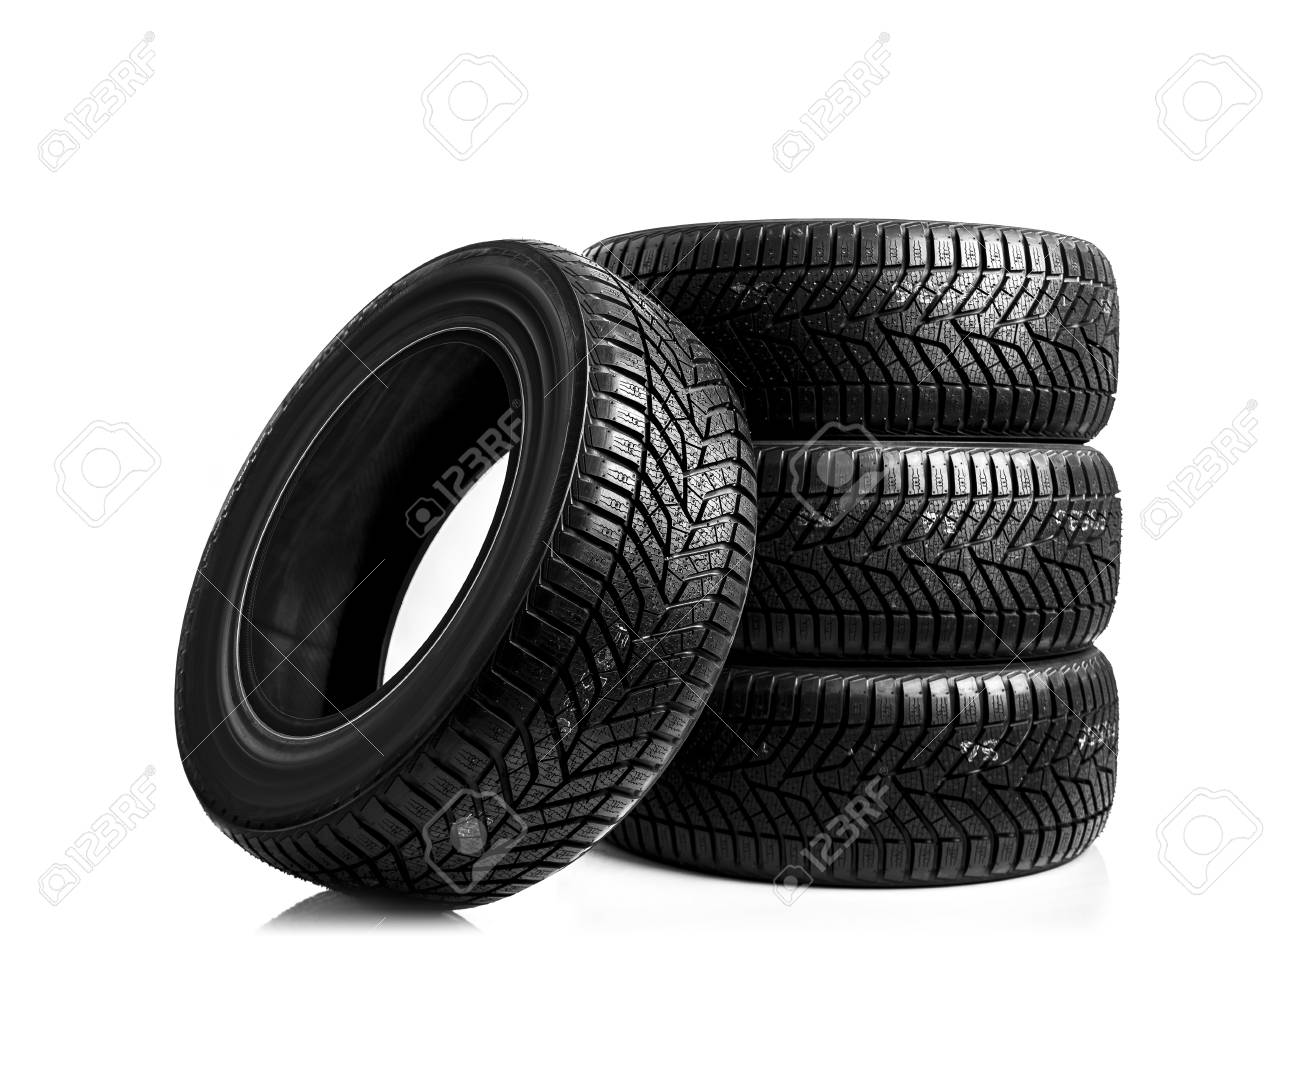 Winter tires on a white background. - 89724283